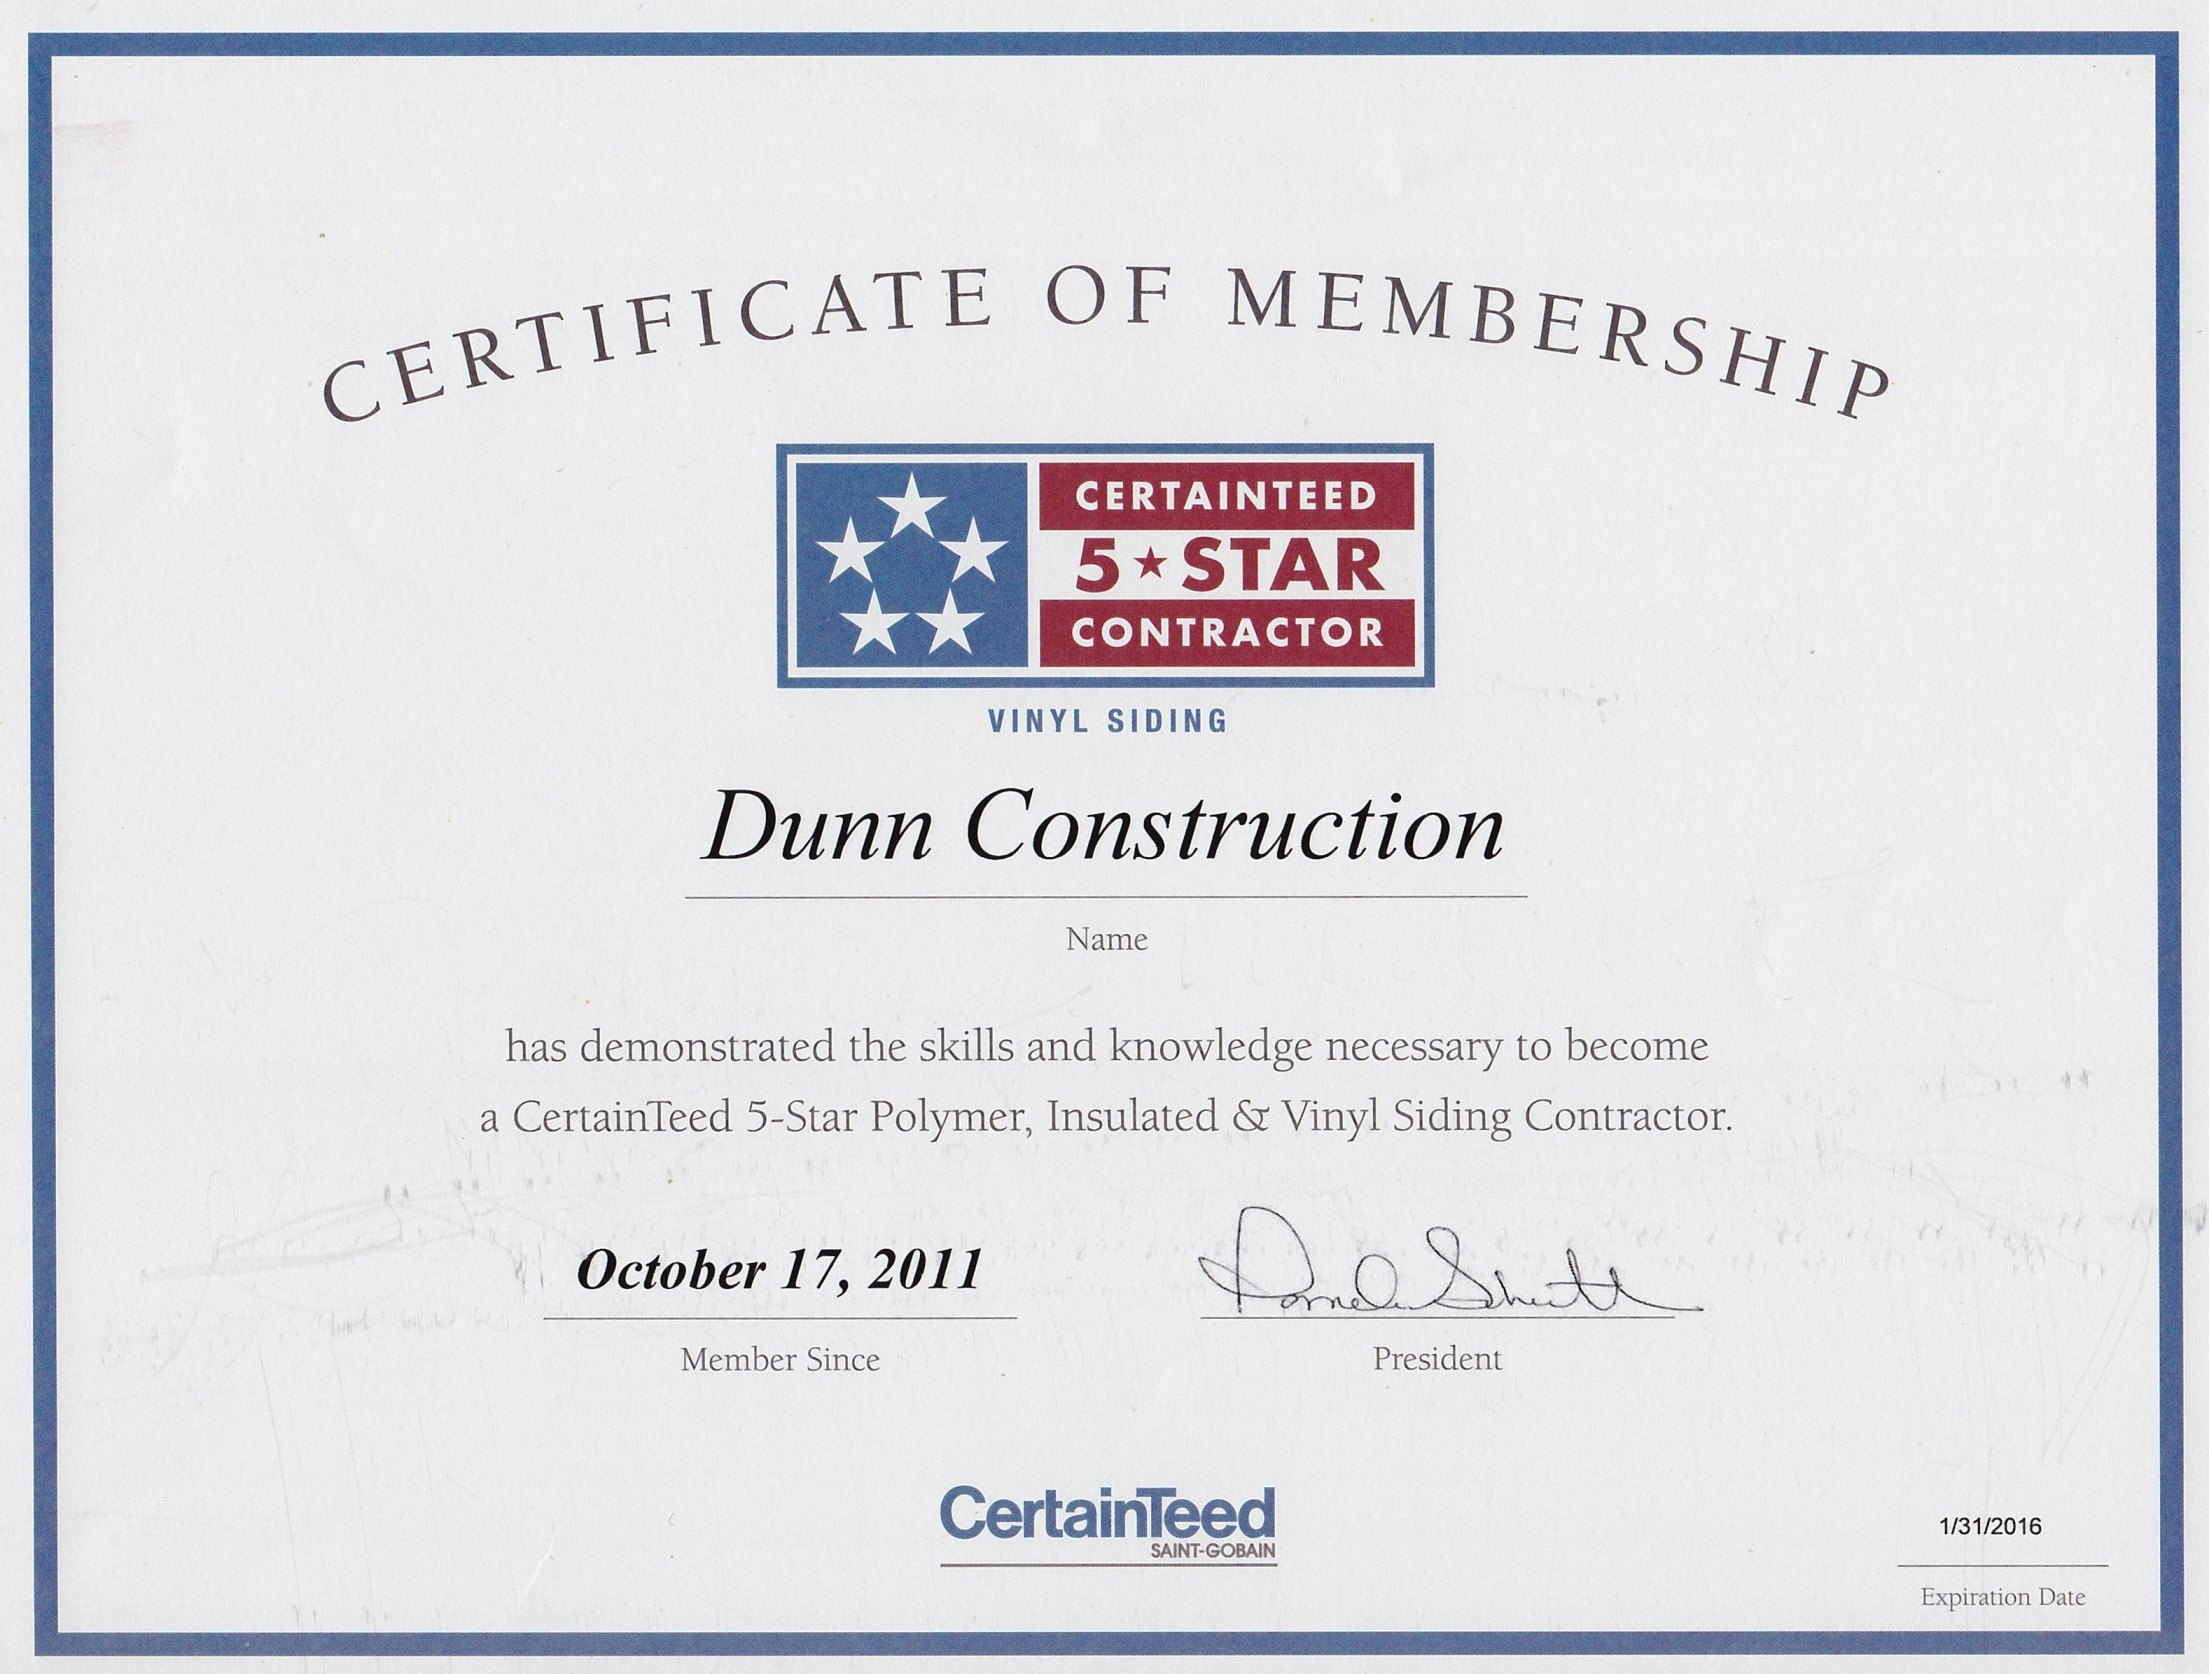 Certifications hr dunn construction 1betcityfo Image collections